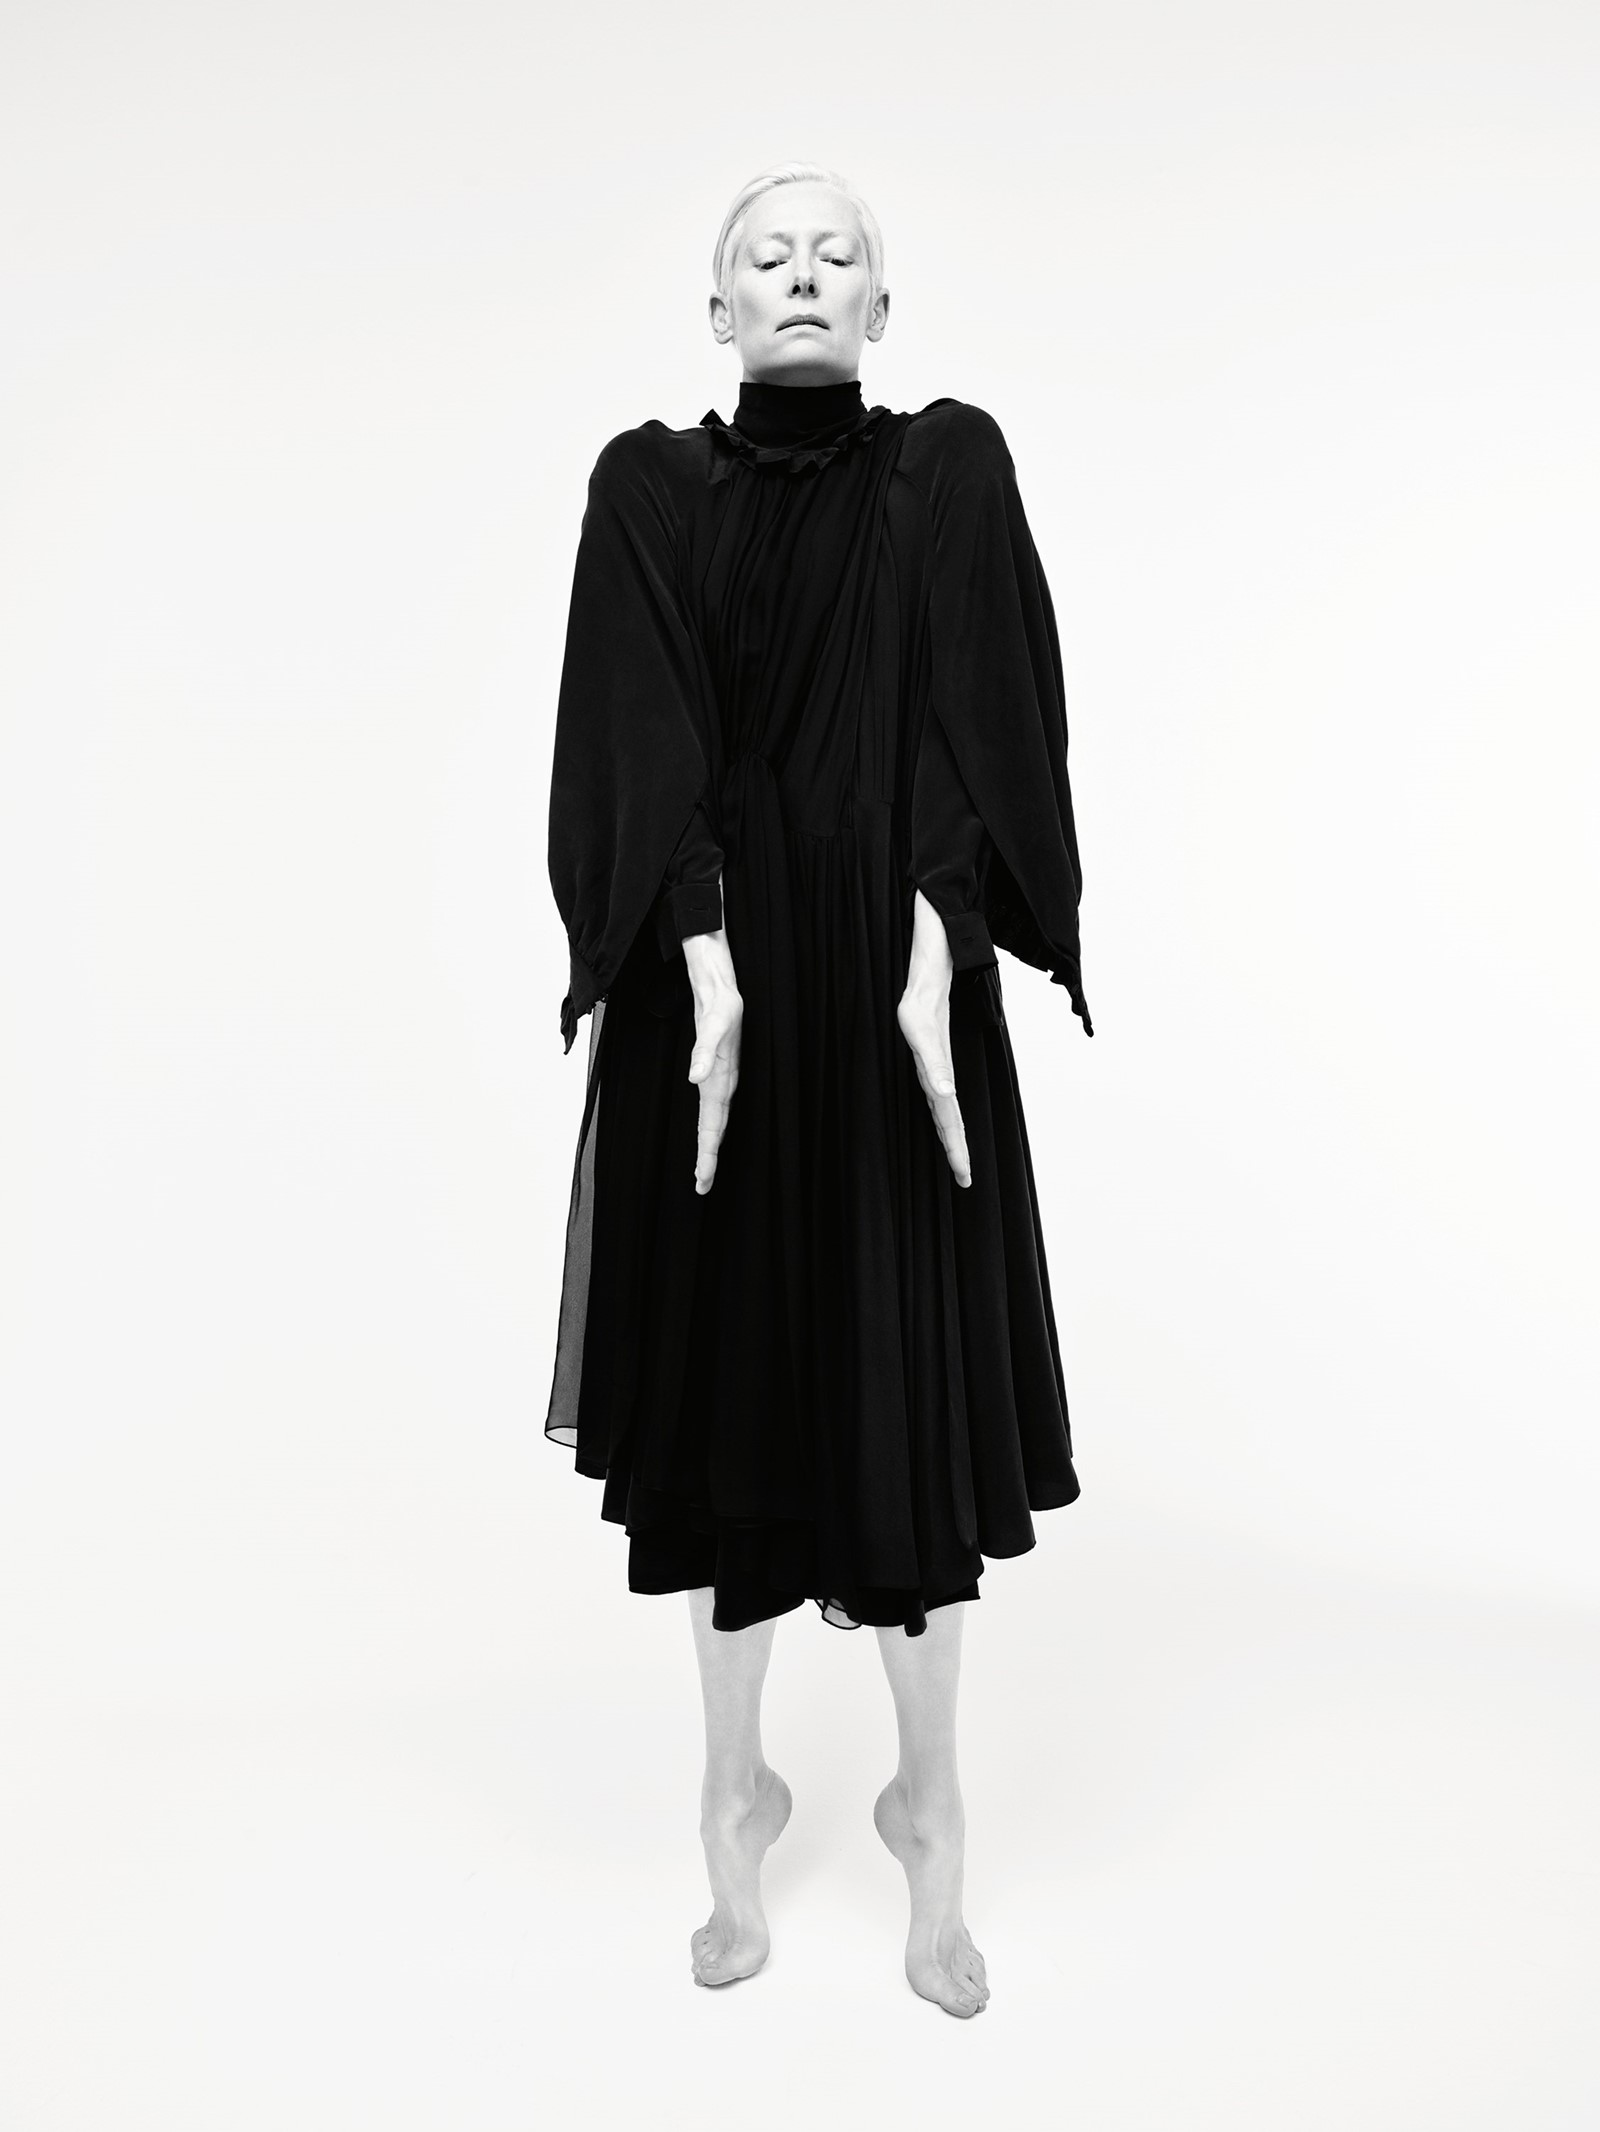 Photography by Willy Vanderperre, Styling by Olivier Rizzo